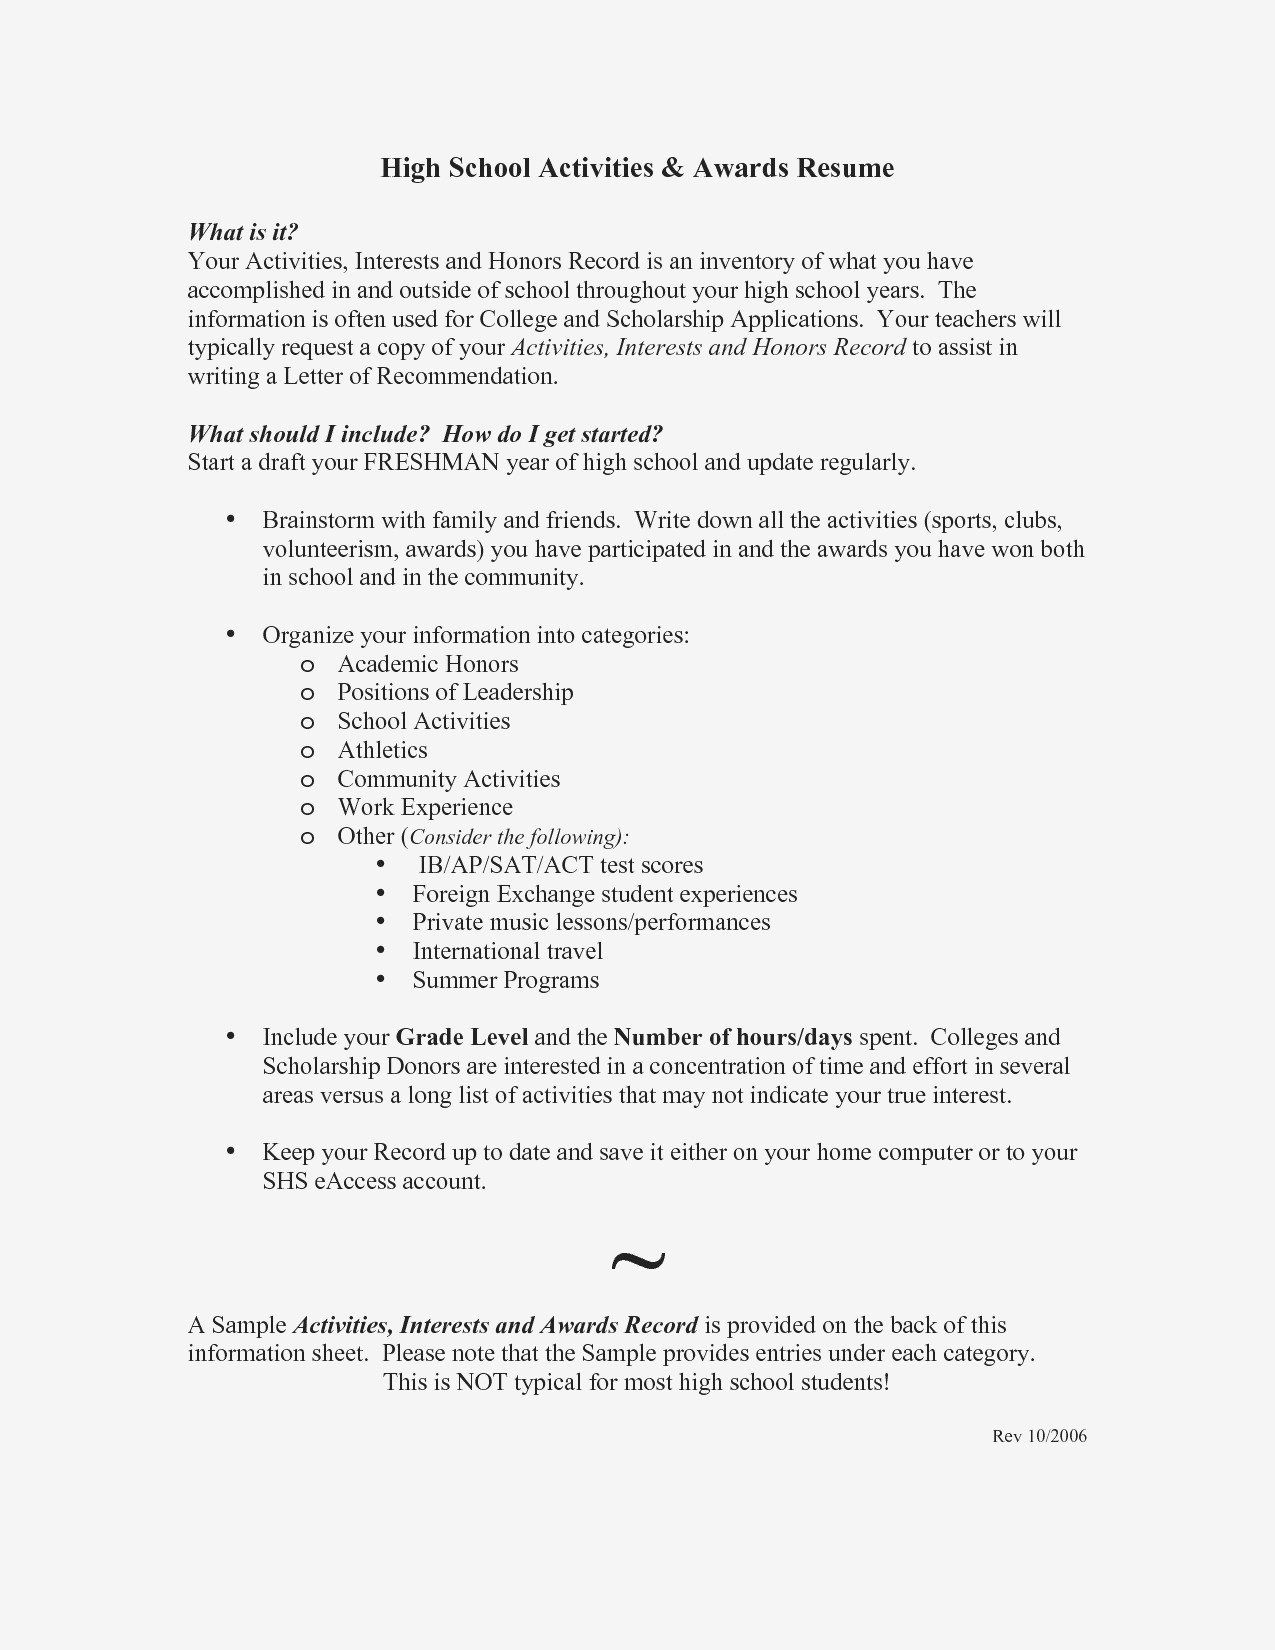 High School Resume Skills Examples Letters Re Mendation For College Fresh High School Resume Template College Resume College Resume Template